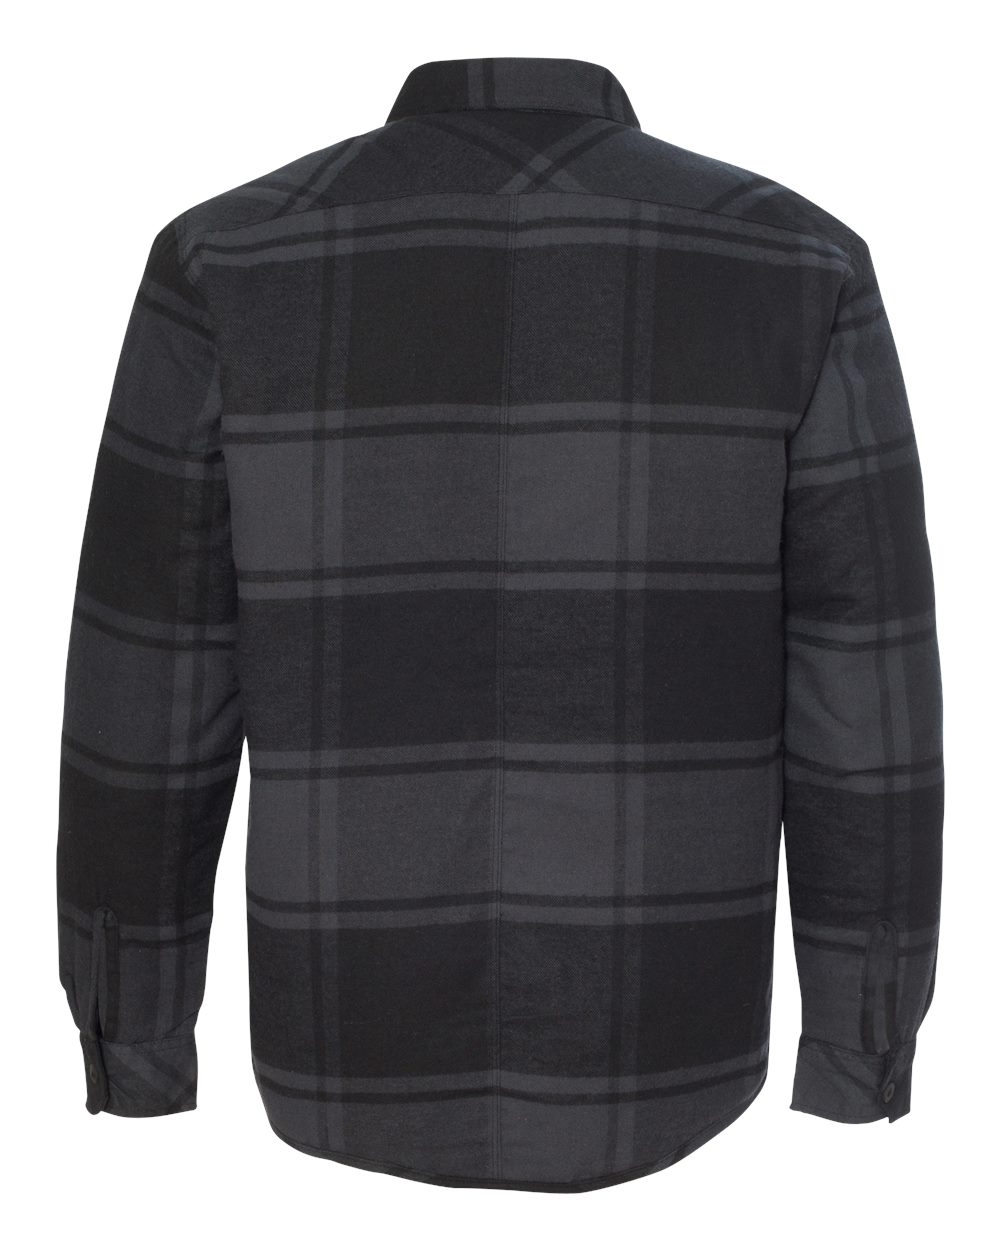 Burnside-Mens-Quilted-Flannel-Jacket-Shirt-8610-up-to-3XL thumbnail 7